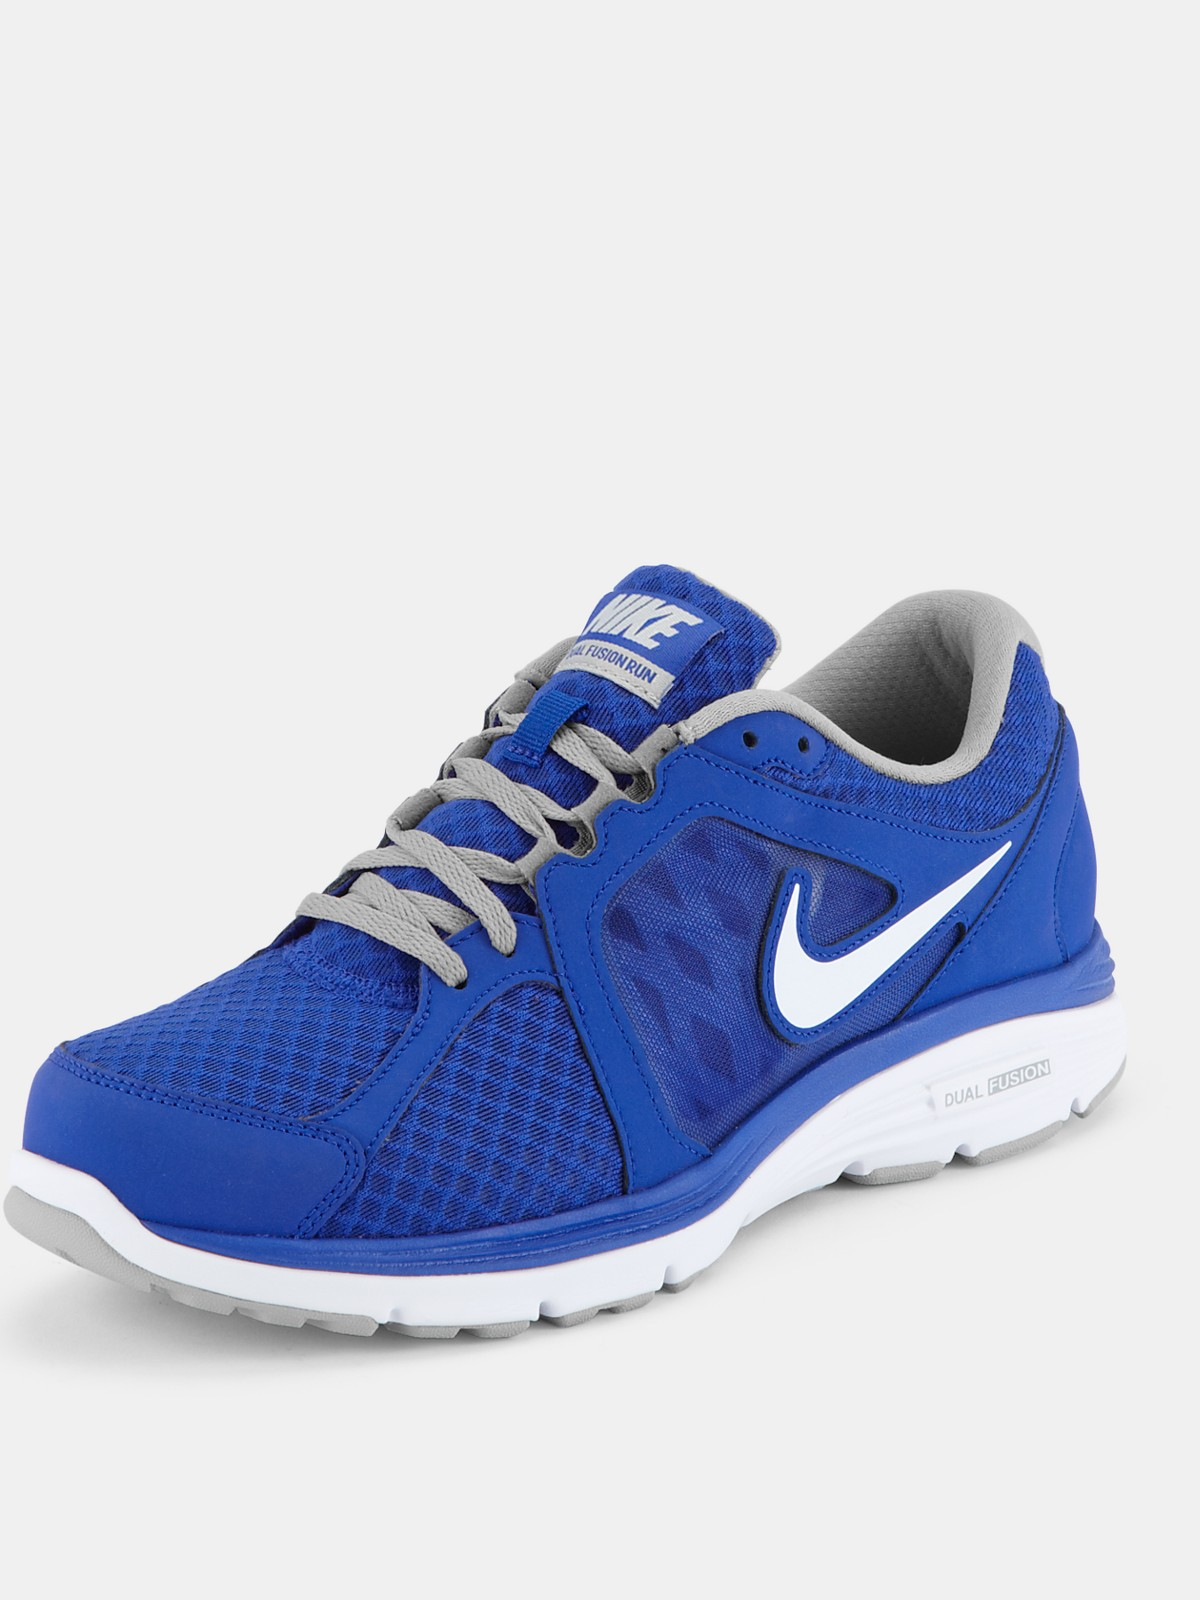 nike dual fusion run breathe mens trainers in blue for men blue white lyst. Black Bedroom Furniture Sets. Home Design Ideas